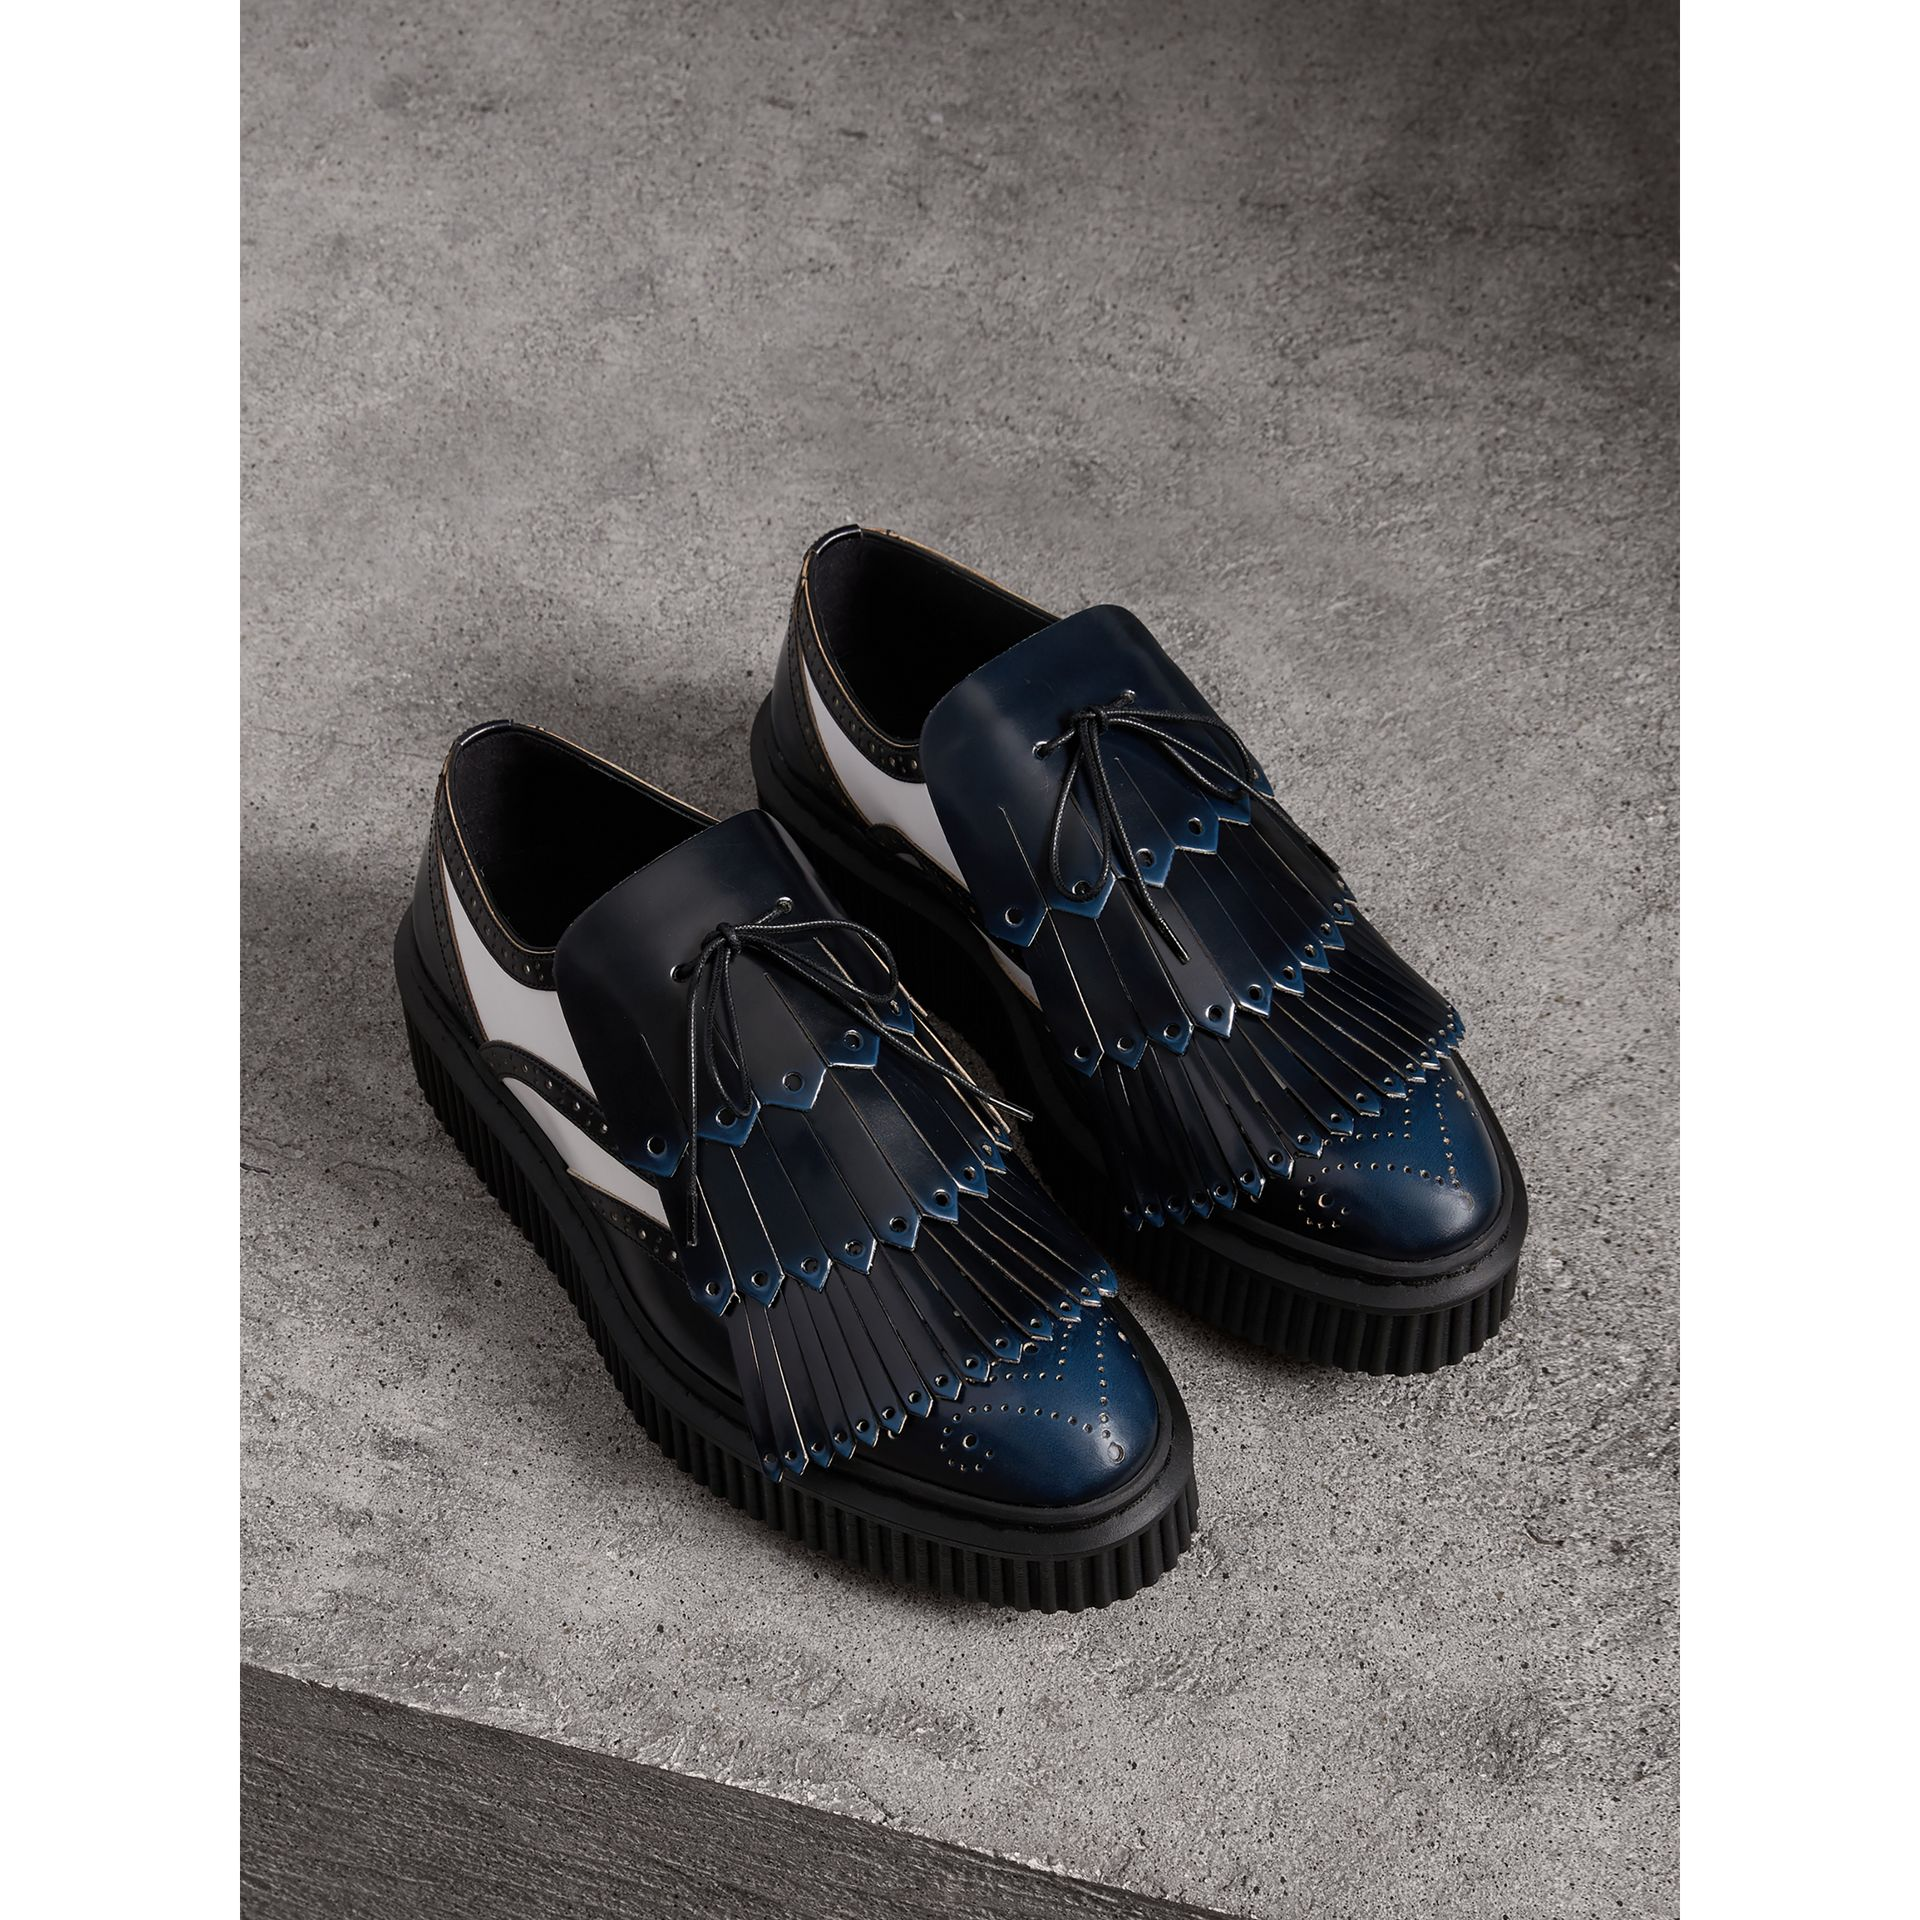 Two-tone Lace-up Kiltie Fringe Leather Shoes in Navy Blue - Women | Burberry - gallery image 1